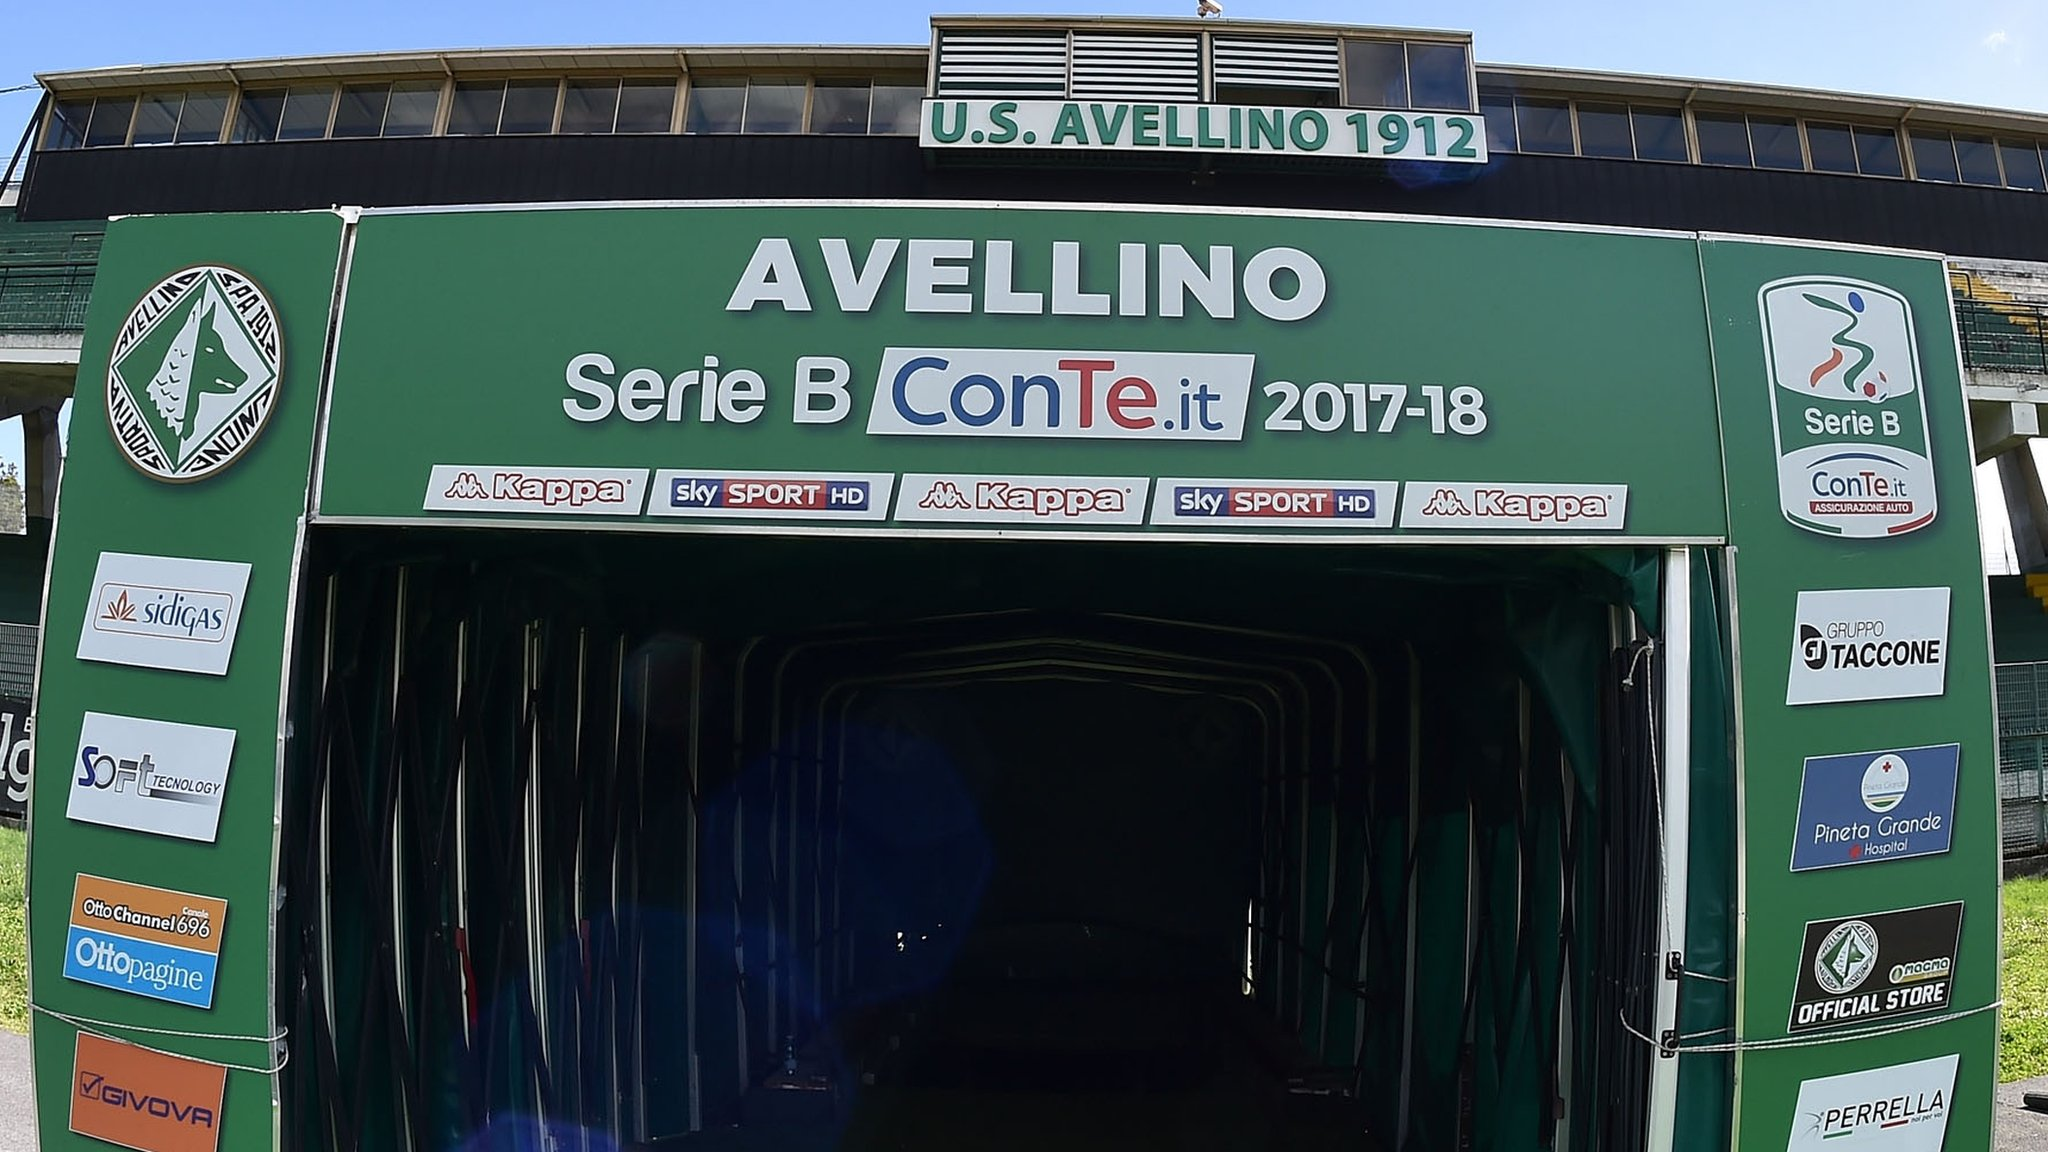 Serie B denies league has been suspended after three clubs go bankrupt